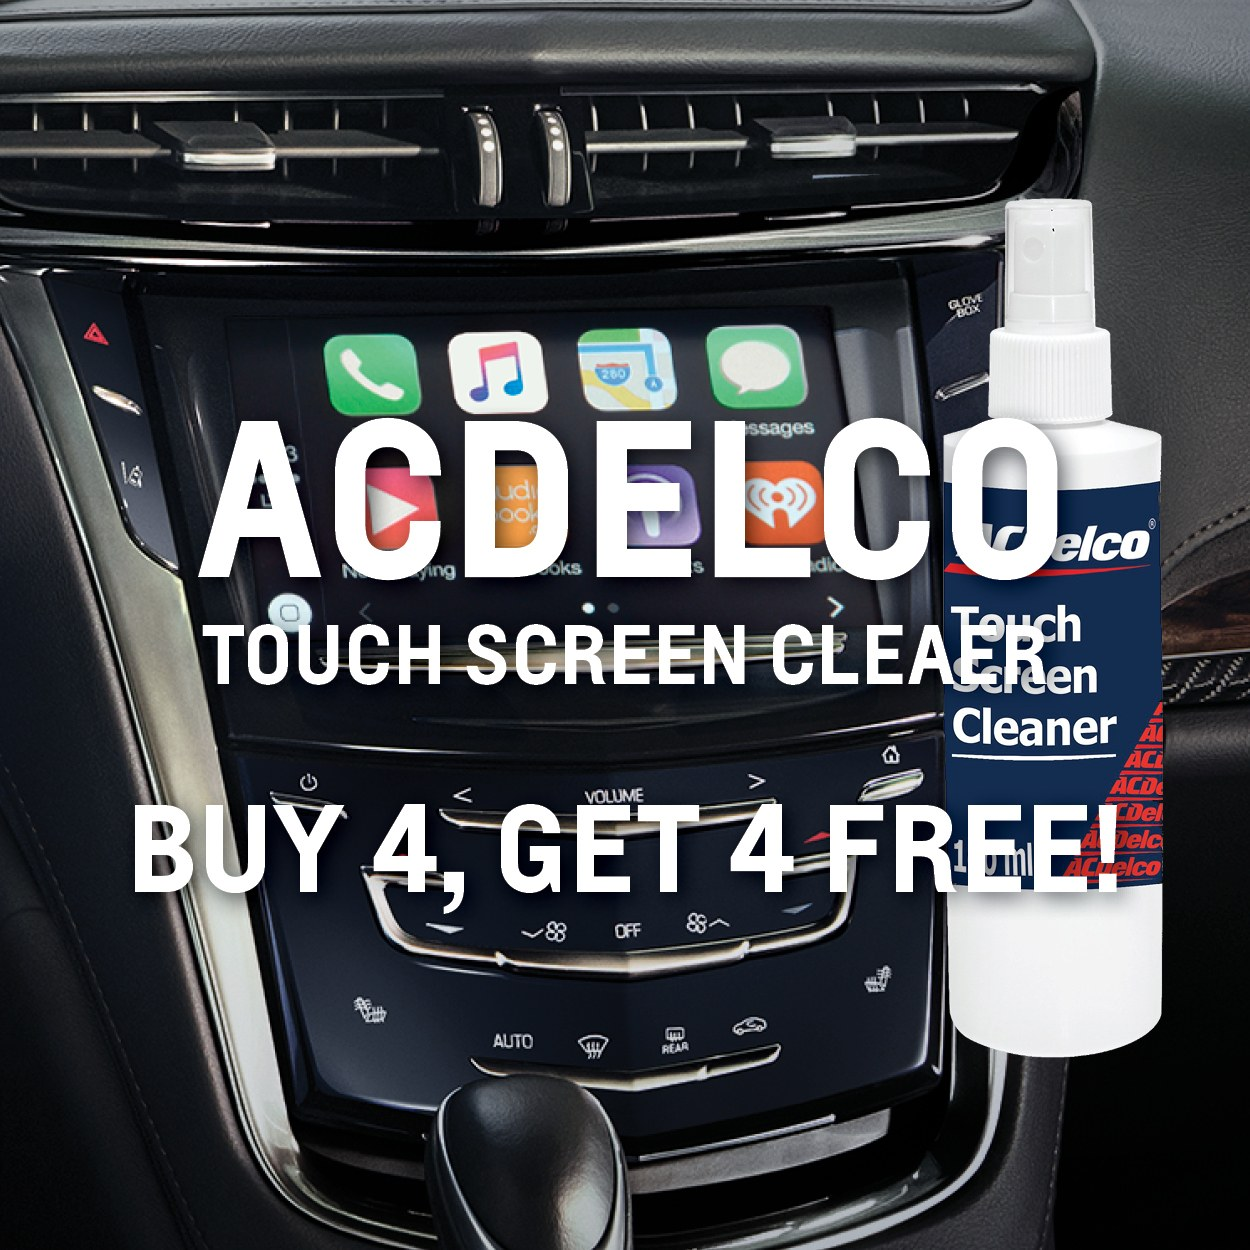 ACDelco Touch Screen Cleaner